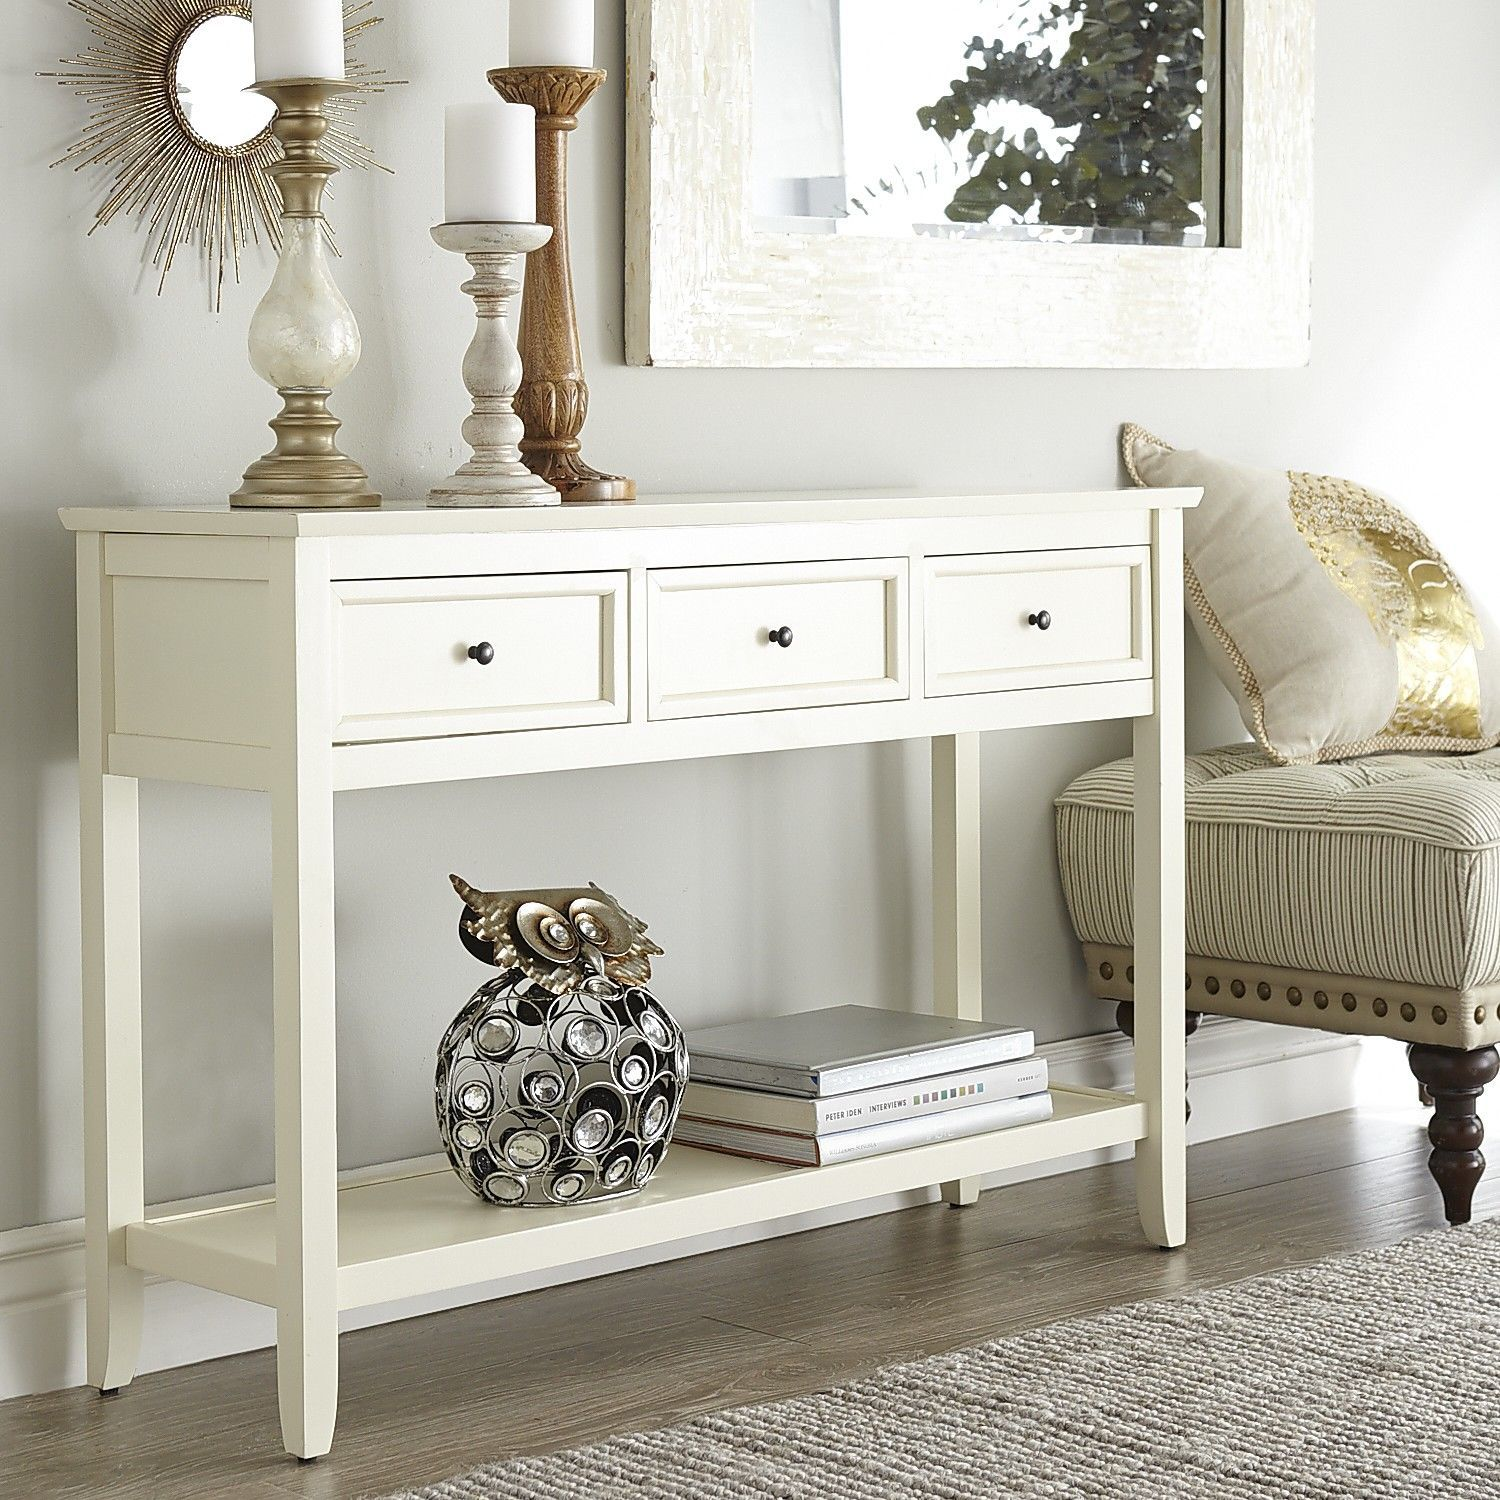 Sofa Cream Nz Ashington Console Table - Antique White | Pier 1 Imports